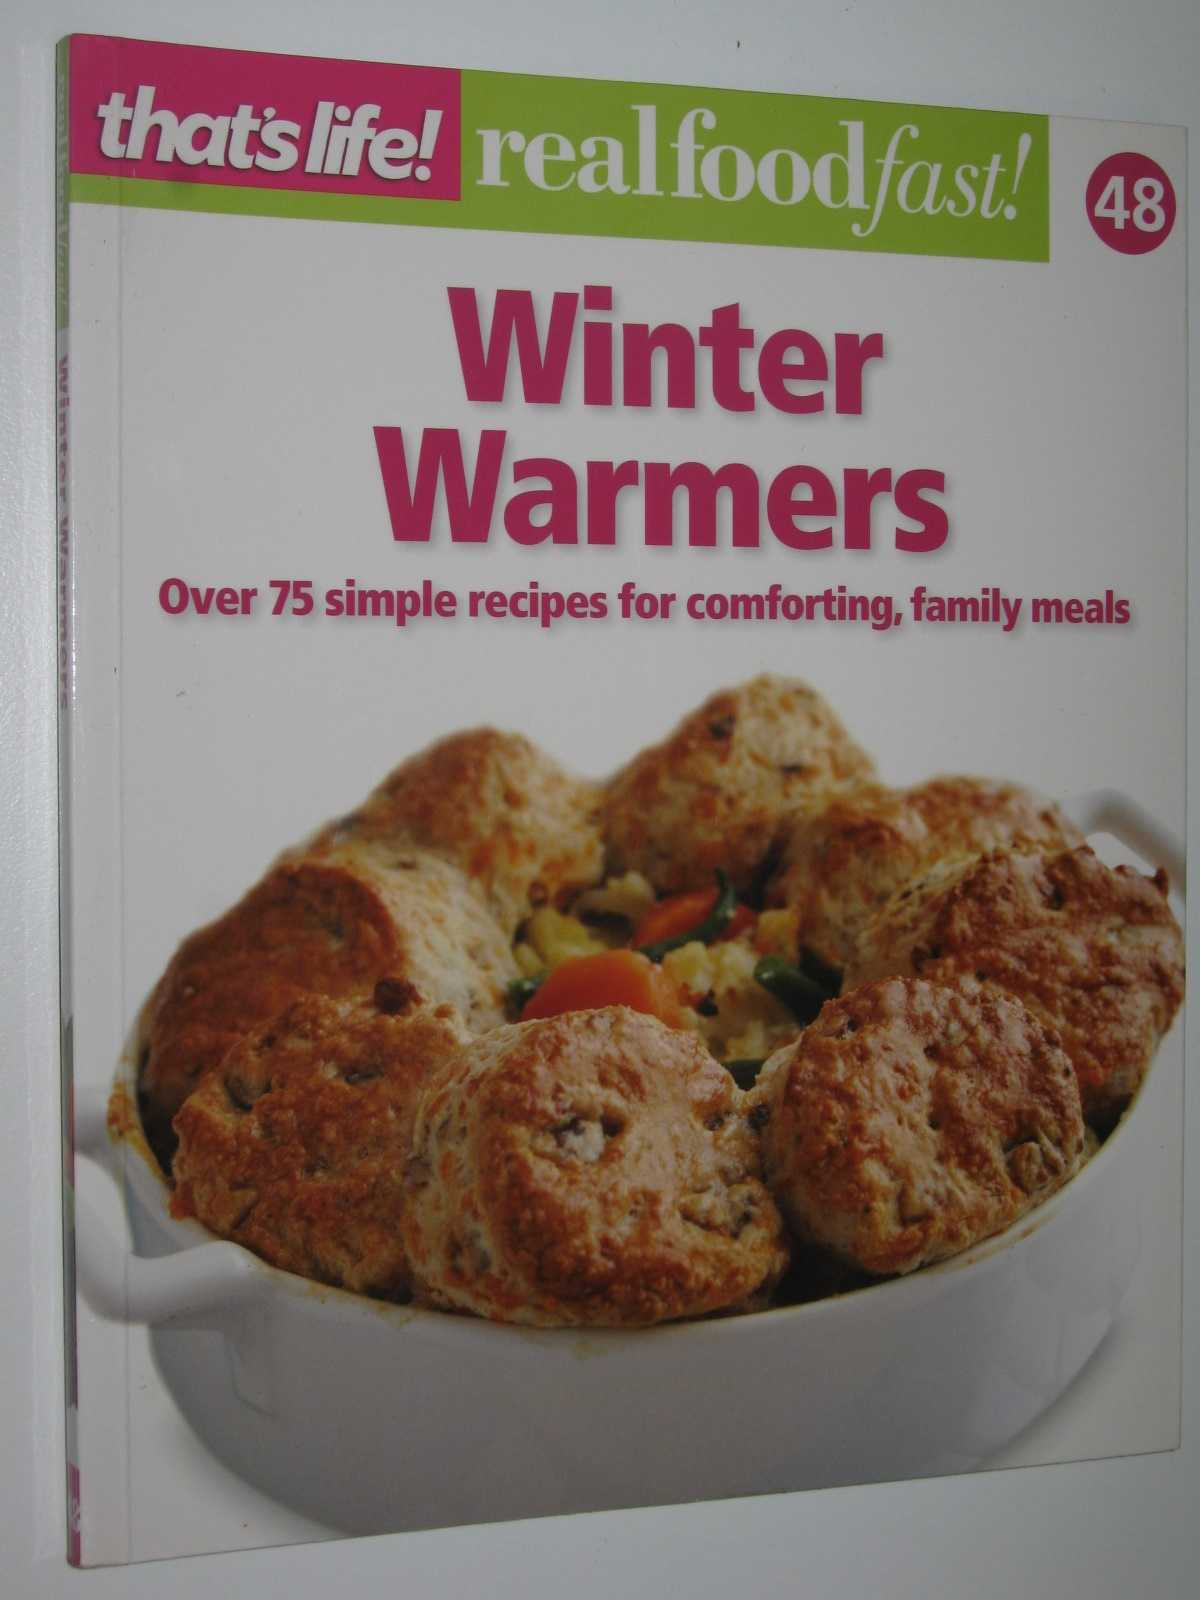 Image for Winter Warmers - Real Food Fast! Series #48